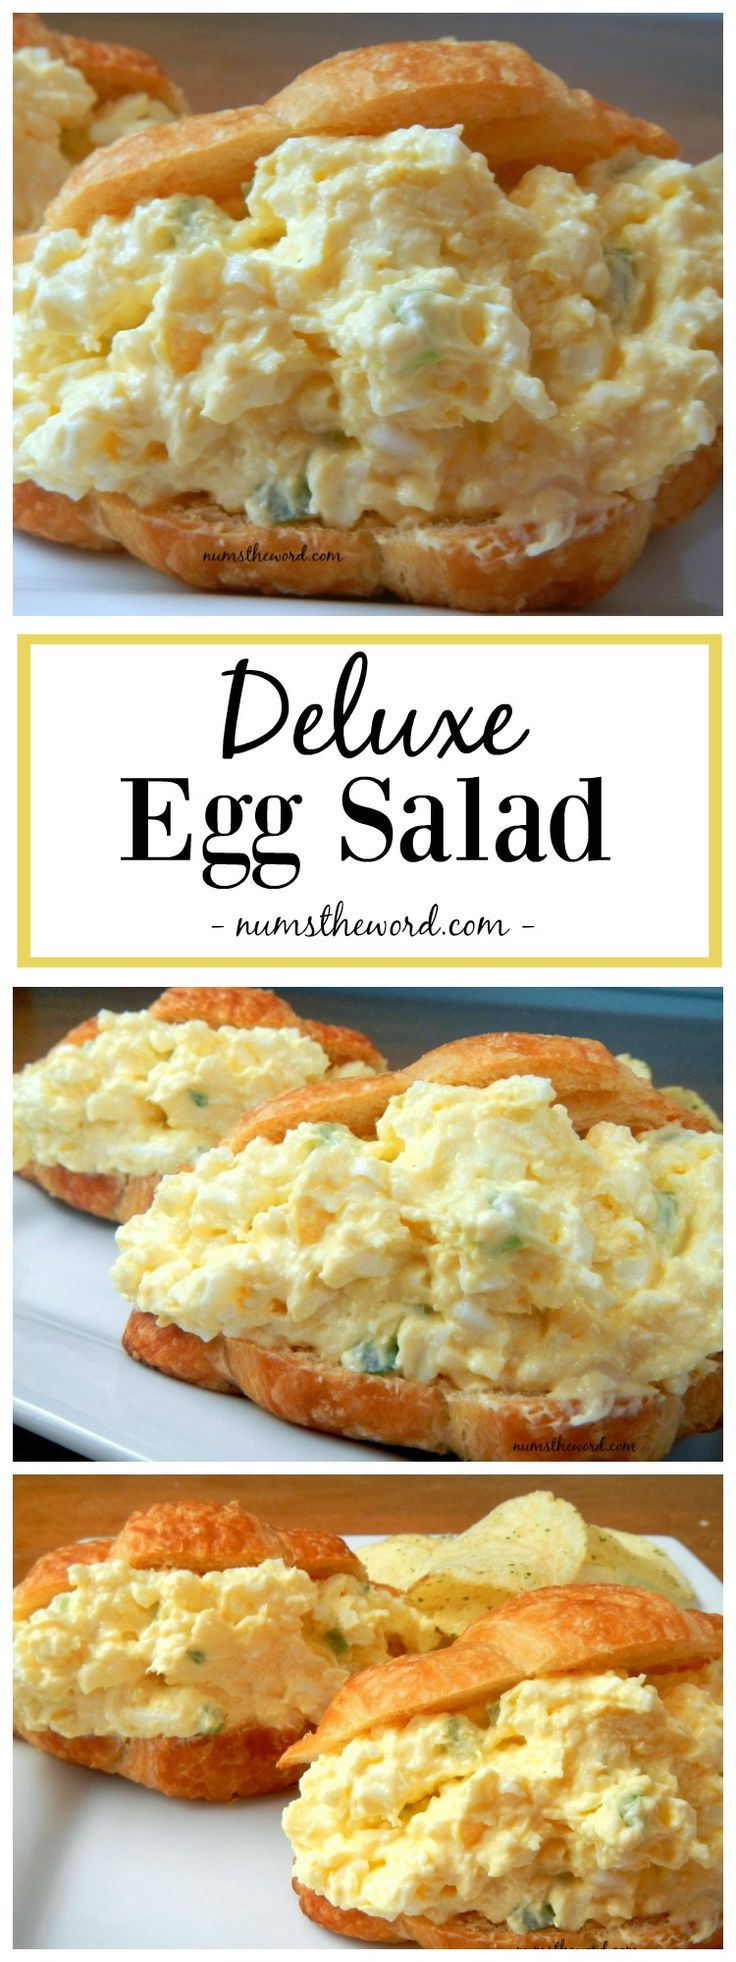 Deluxe Egg Salad - Looking for an upgrade on the traditional egg salad? Try this one! It includes cream cheese, grated onions and is by far my favorite version of egg salad!